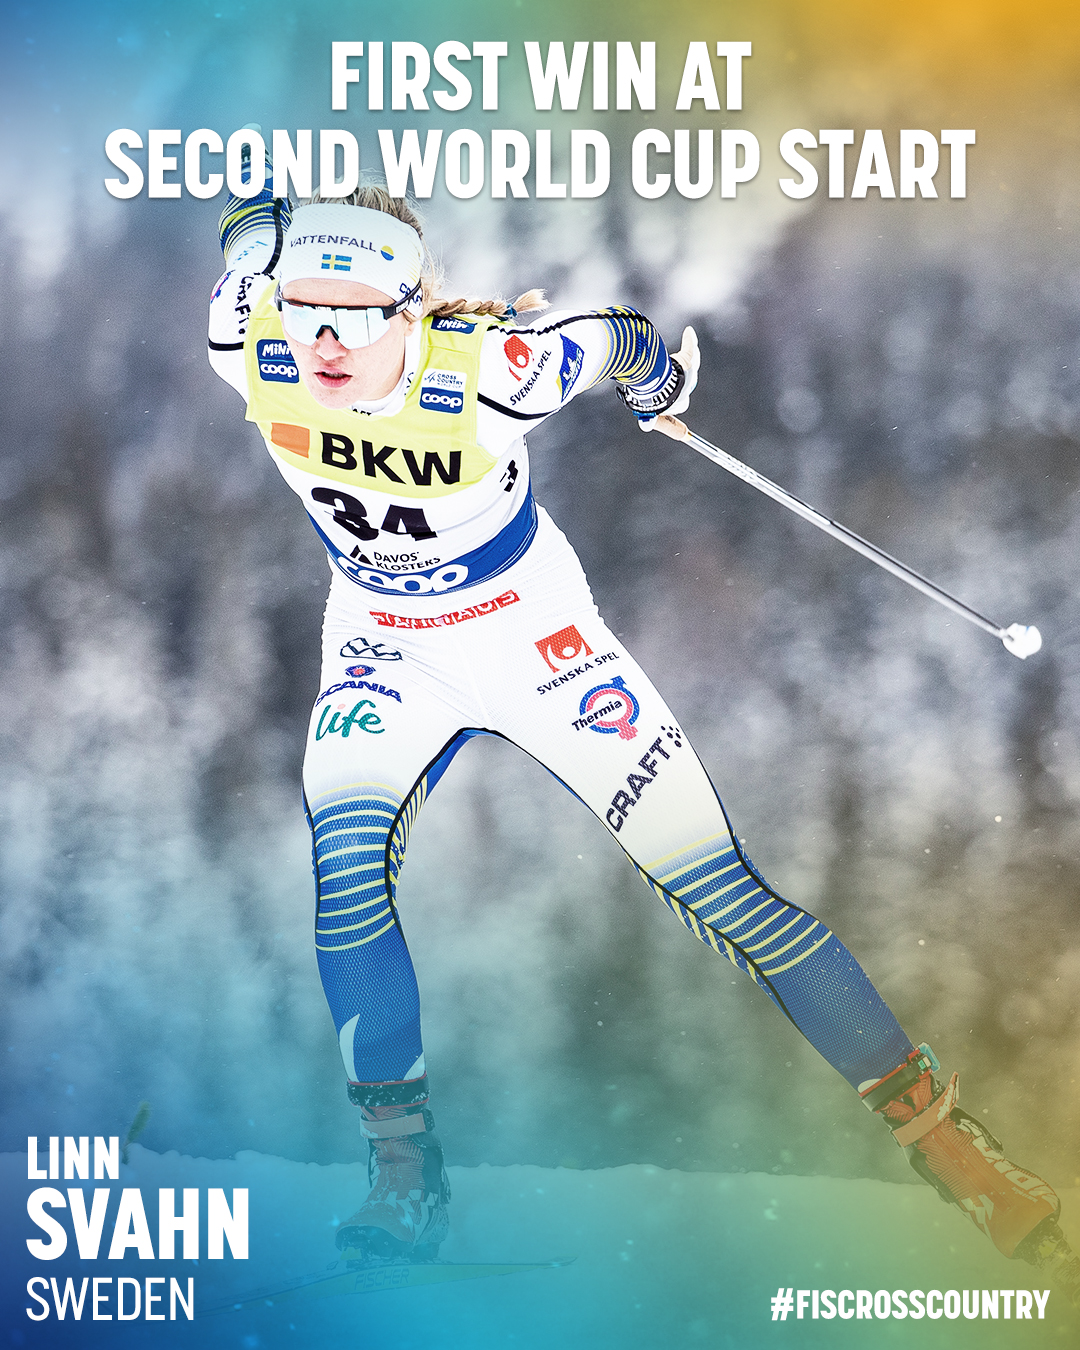 Fis Cross Country On Twitter Linn Svahn A Name To Remember The 20 Year Young Swedish Rookie Has Competed At Only One World Cup Event In Falun 2018 Before Taking Her First World Cup Victory This Past Weekend At Davos Nordic Fiscrosscountry